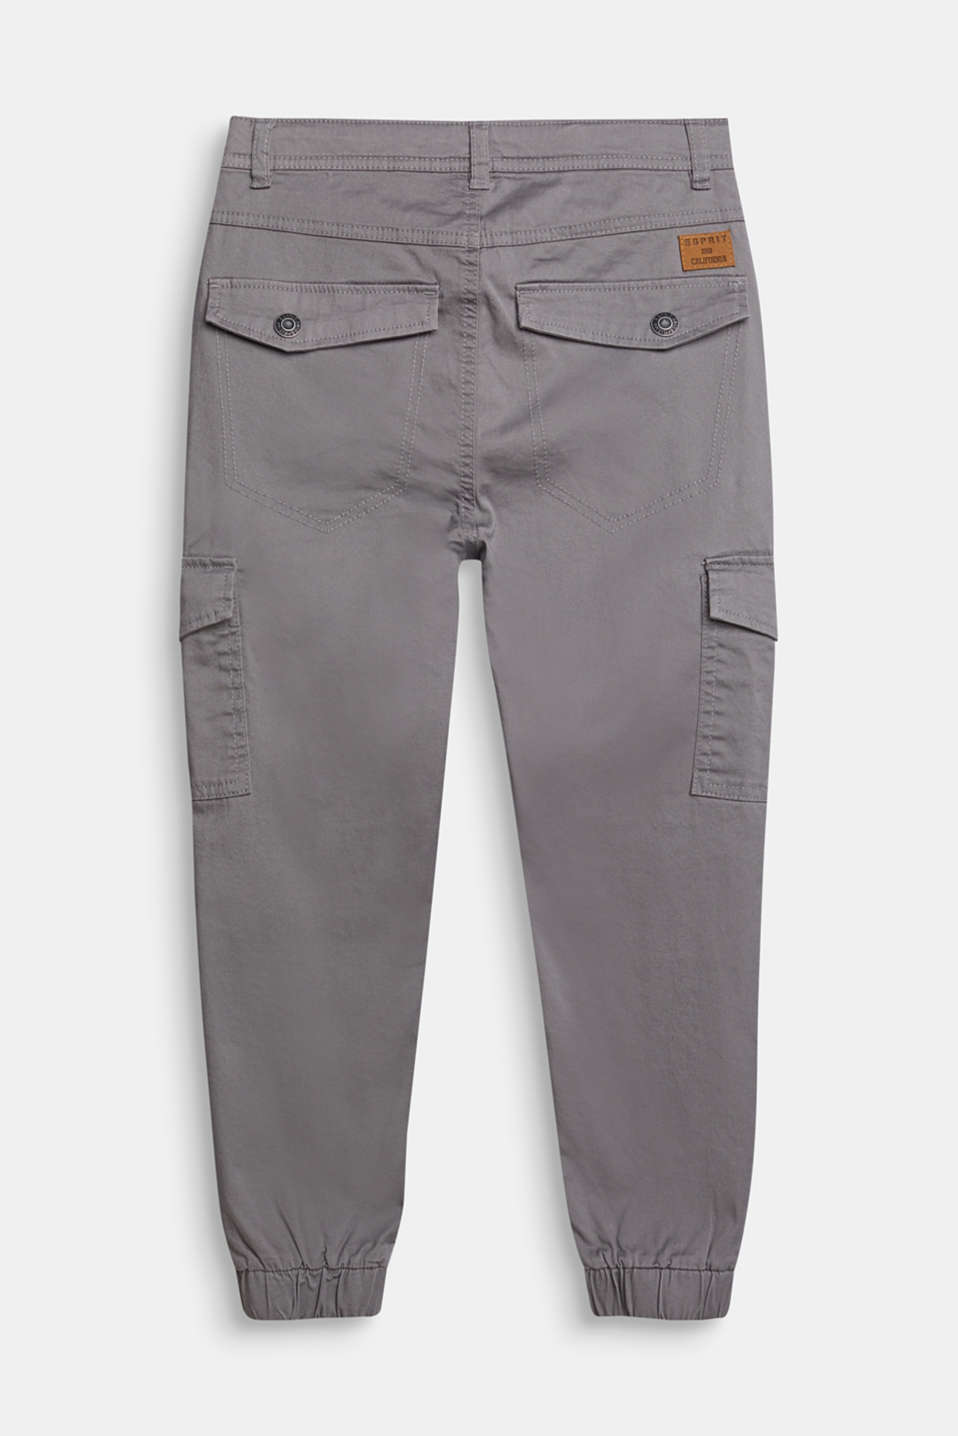 Stretch cotton cargo trousers, adjustable waistband, LCGREY, detail image number 1